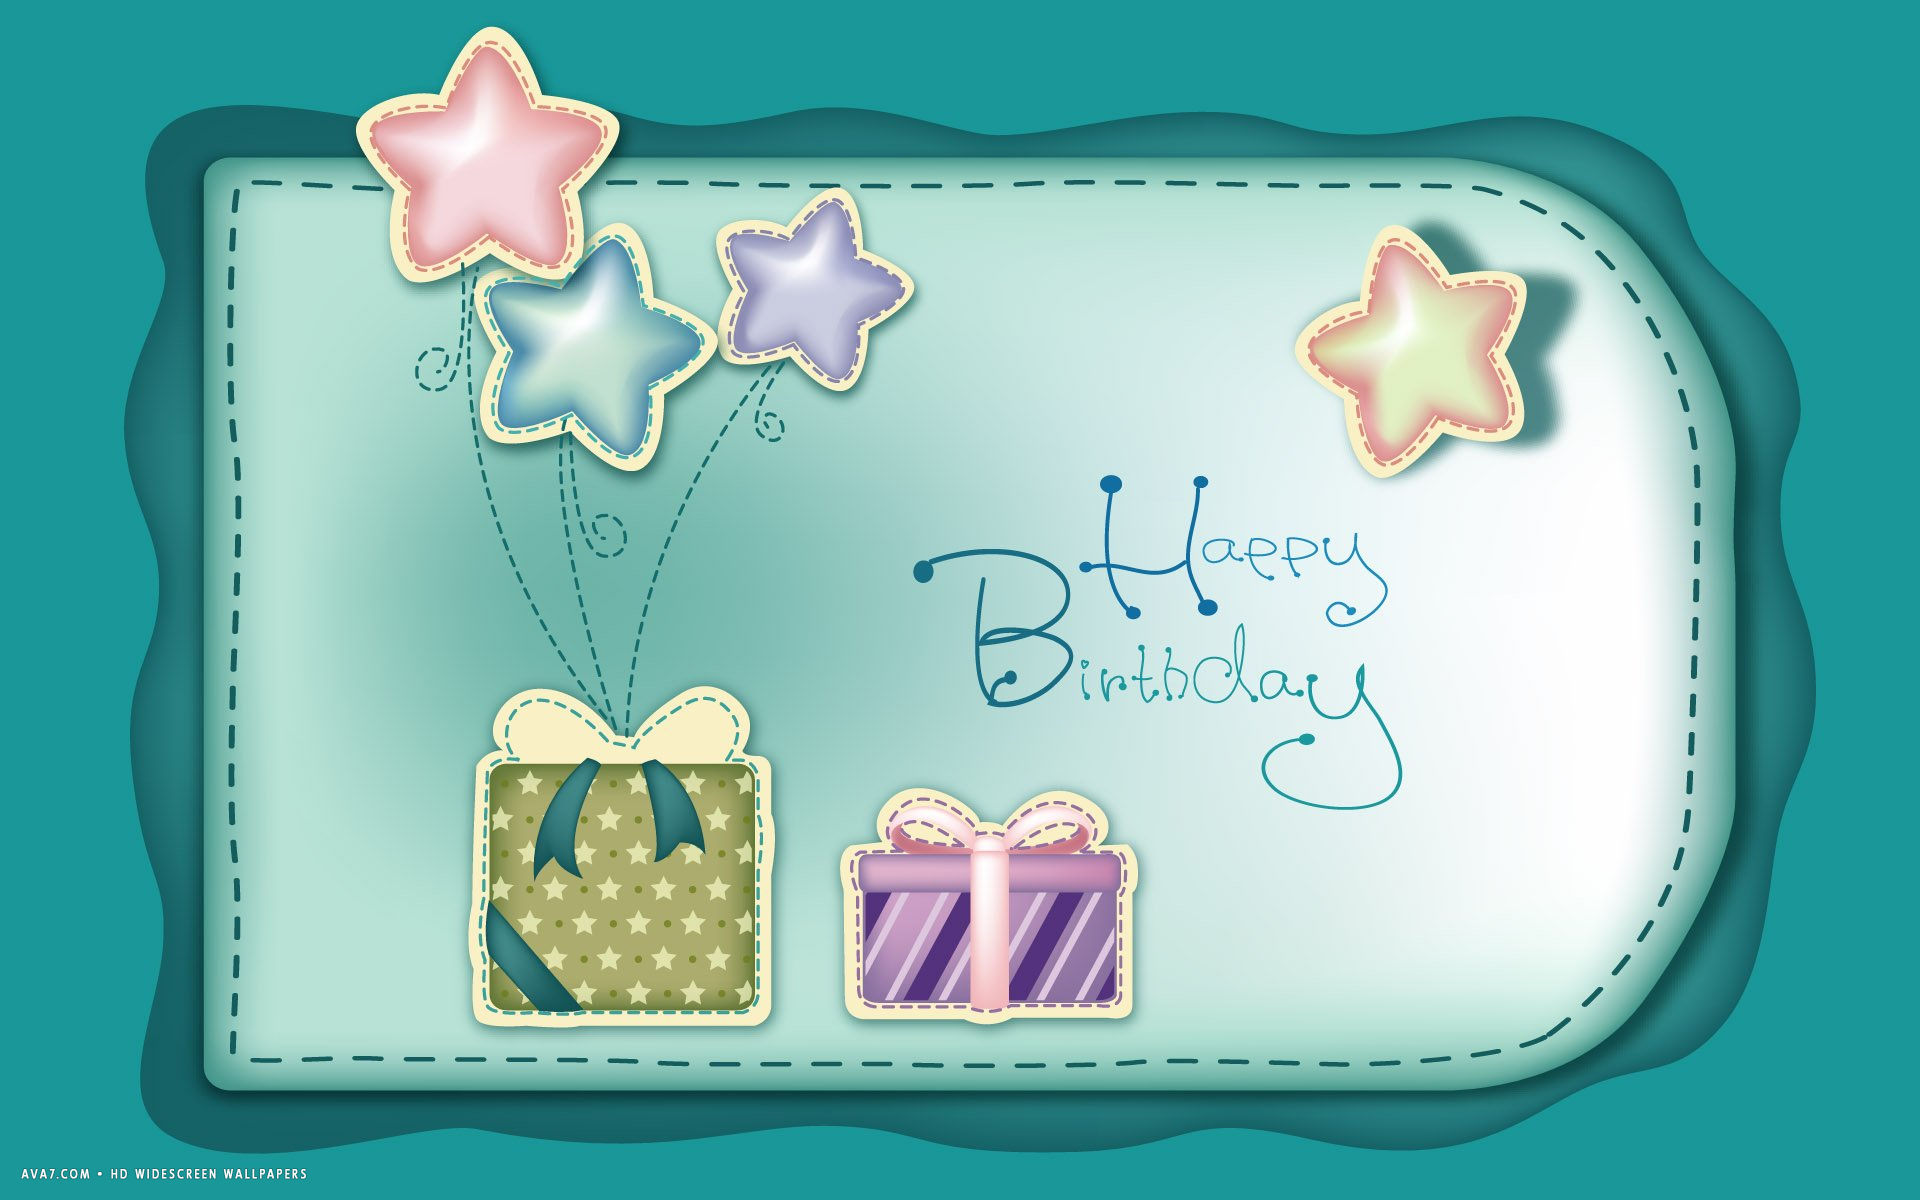 Happy Birthday Wish Stars Presents Teal Vector Art Hd Widescreen Wallpaper Holidays Backgrounds